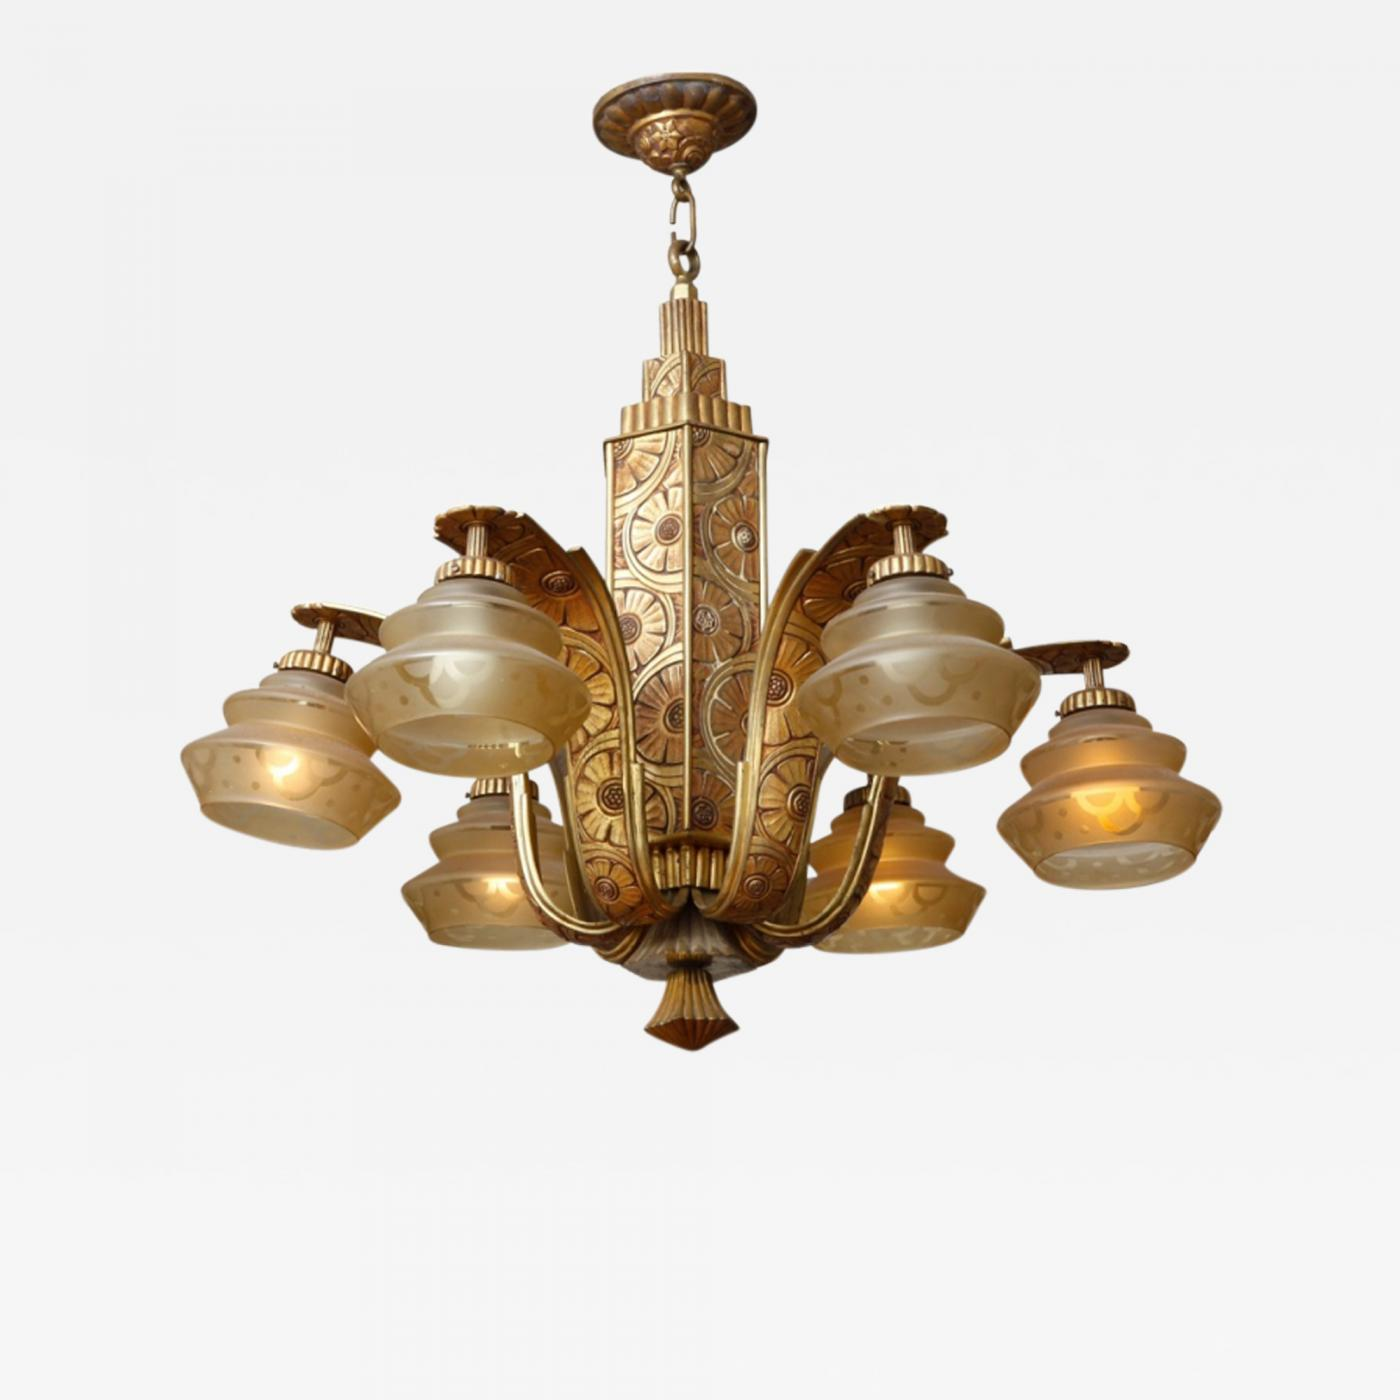 Simonnet french art deco chandelier by simonnet listings furniture lighting chandeliers and pendants simonnet french art deco arubaitofo Choice Image